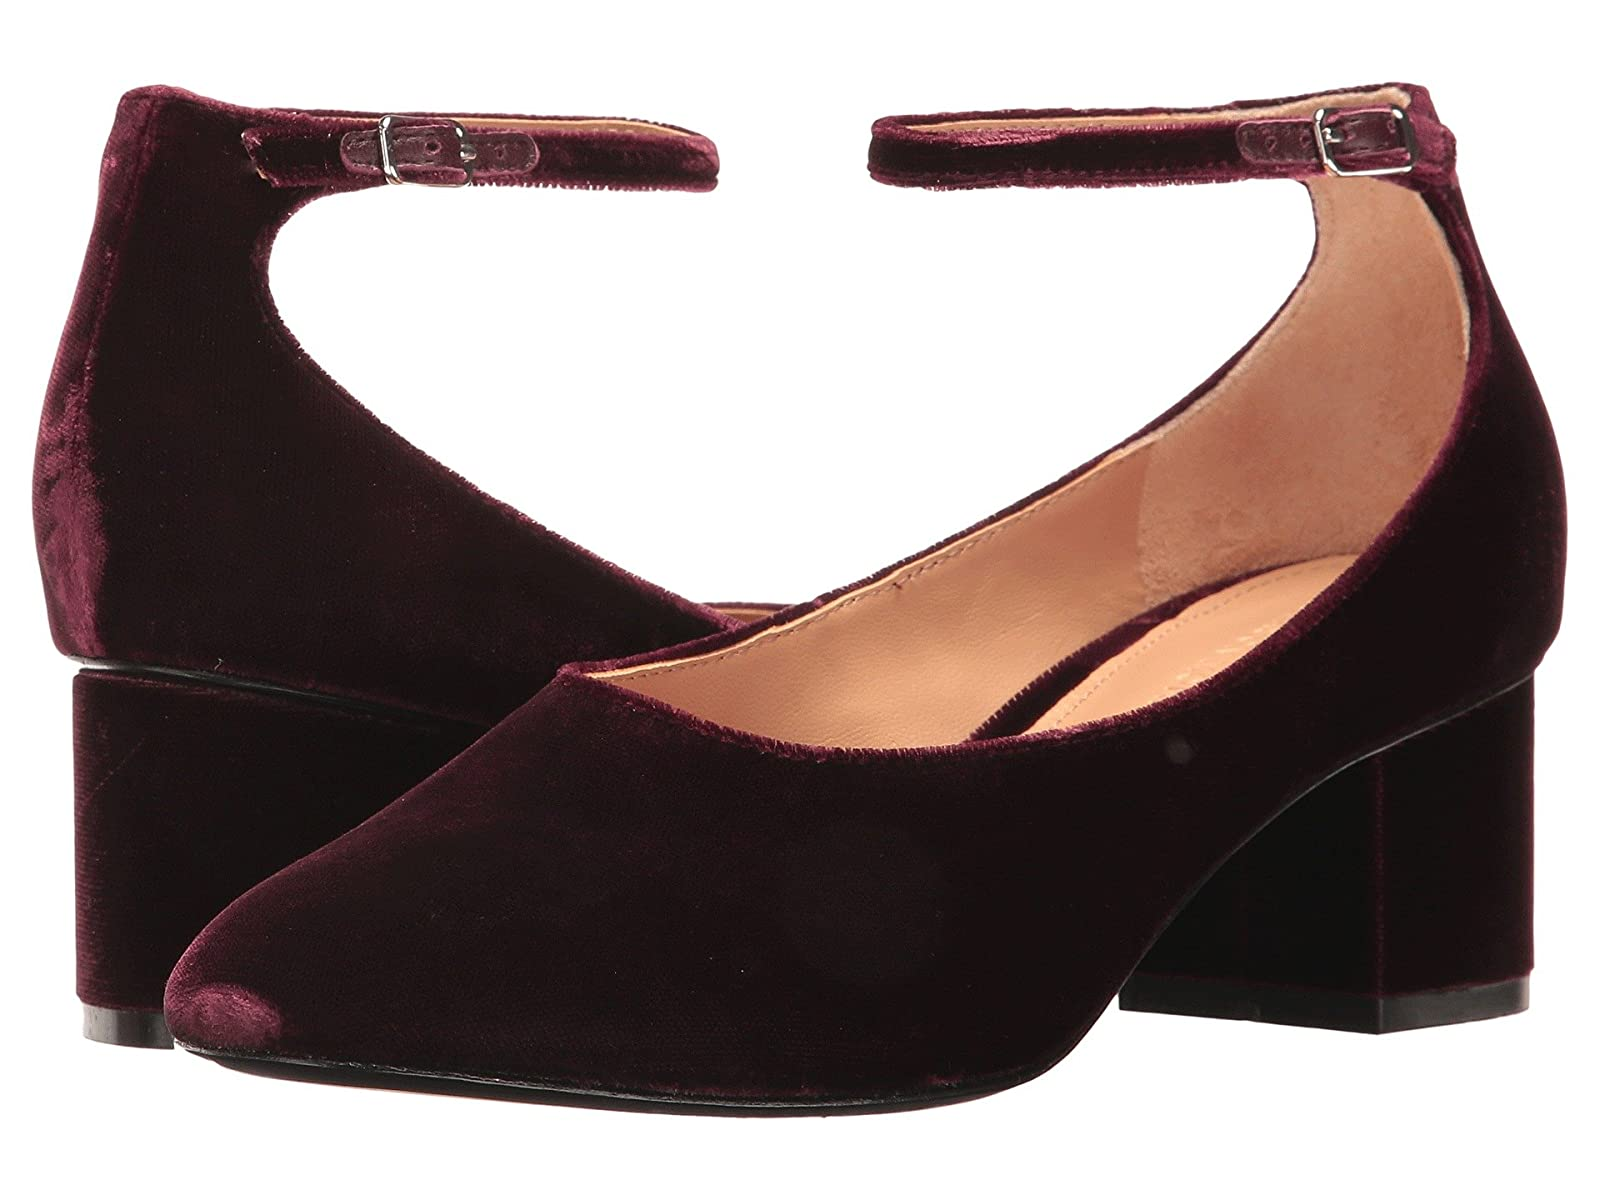 Sigerson Morrison Kairos 2Cheap and distinctive eye-catching shoes